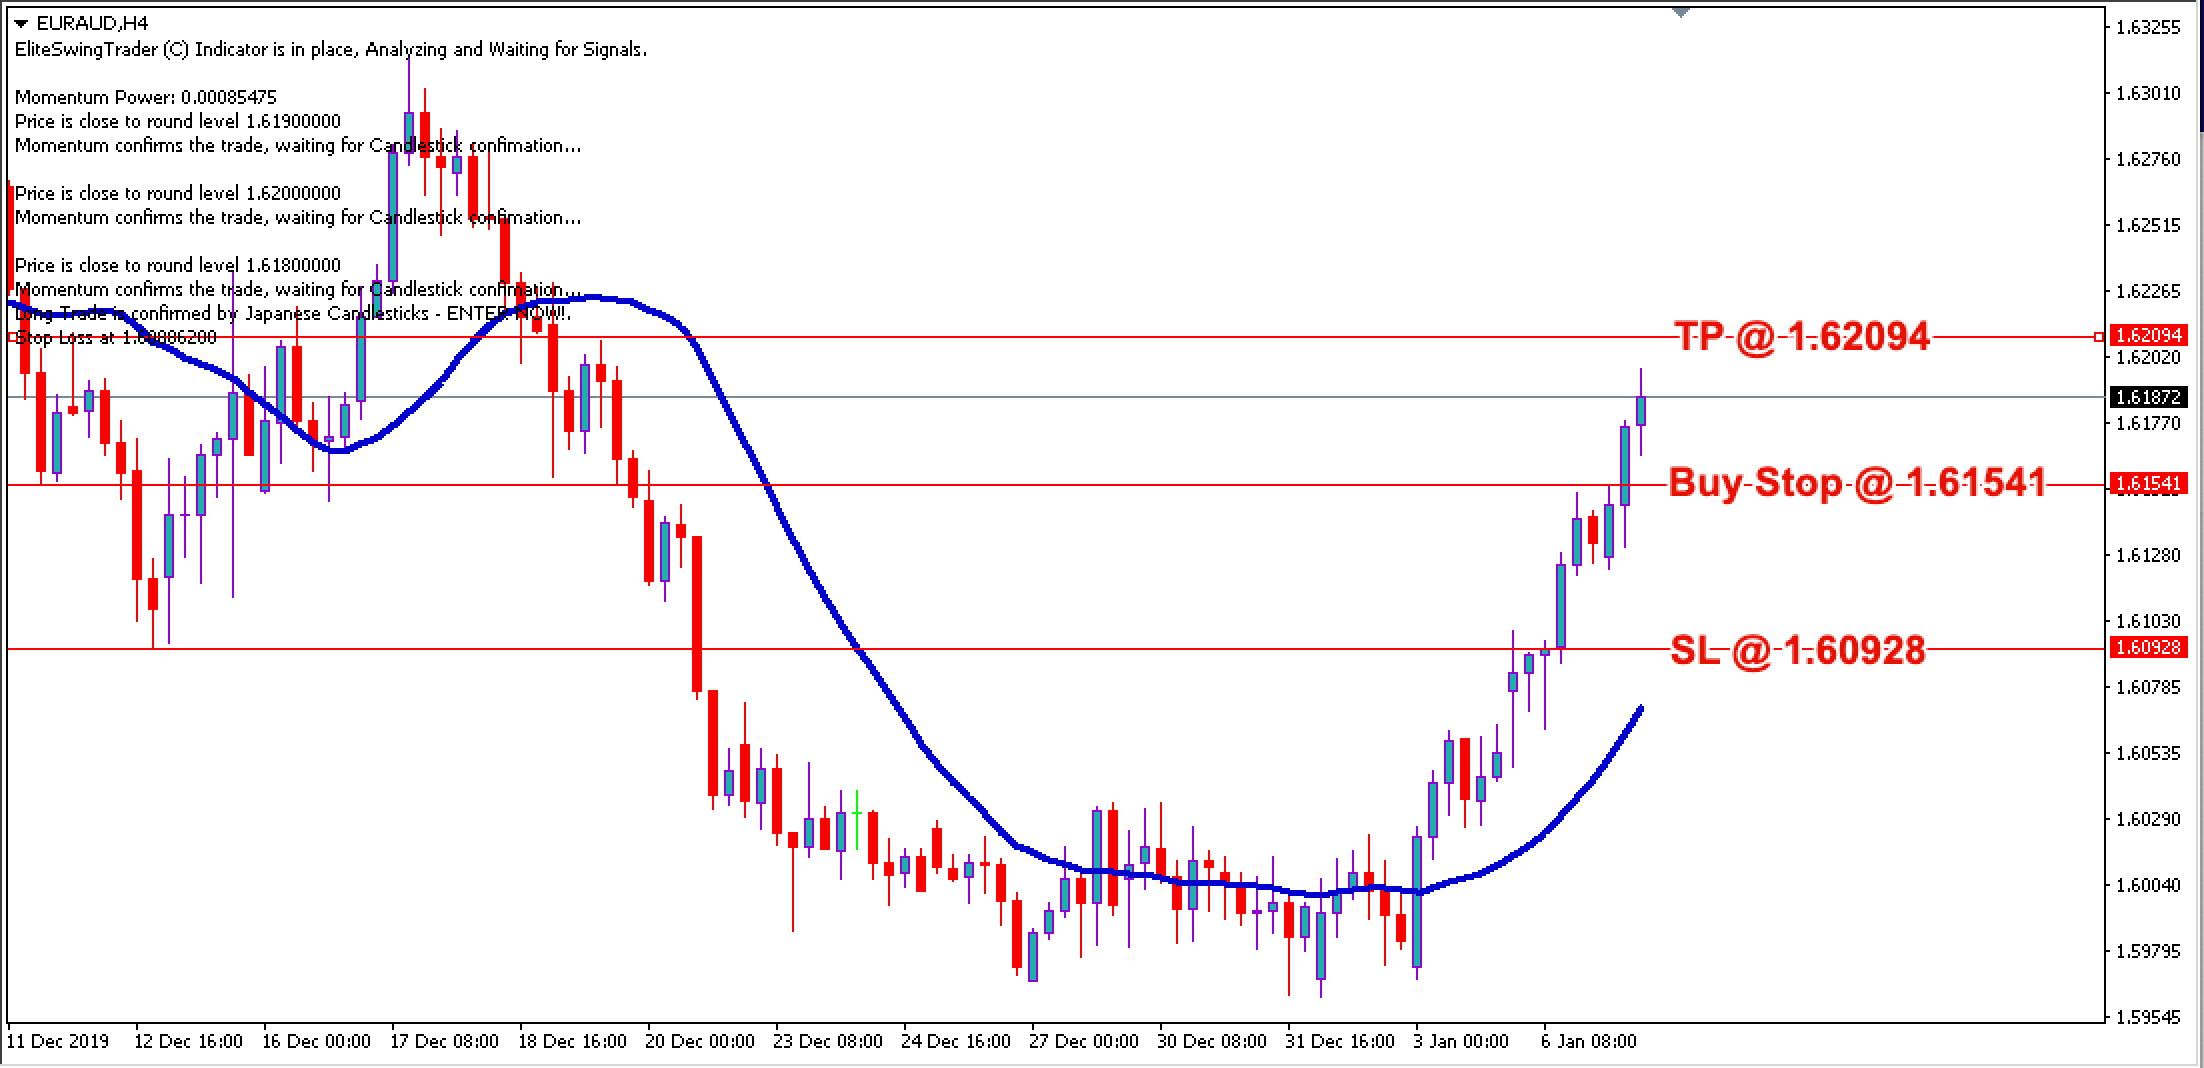 EUR/AUD Daily Price Forecast – 7th Jan 2020